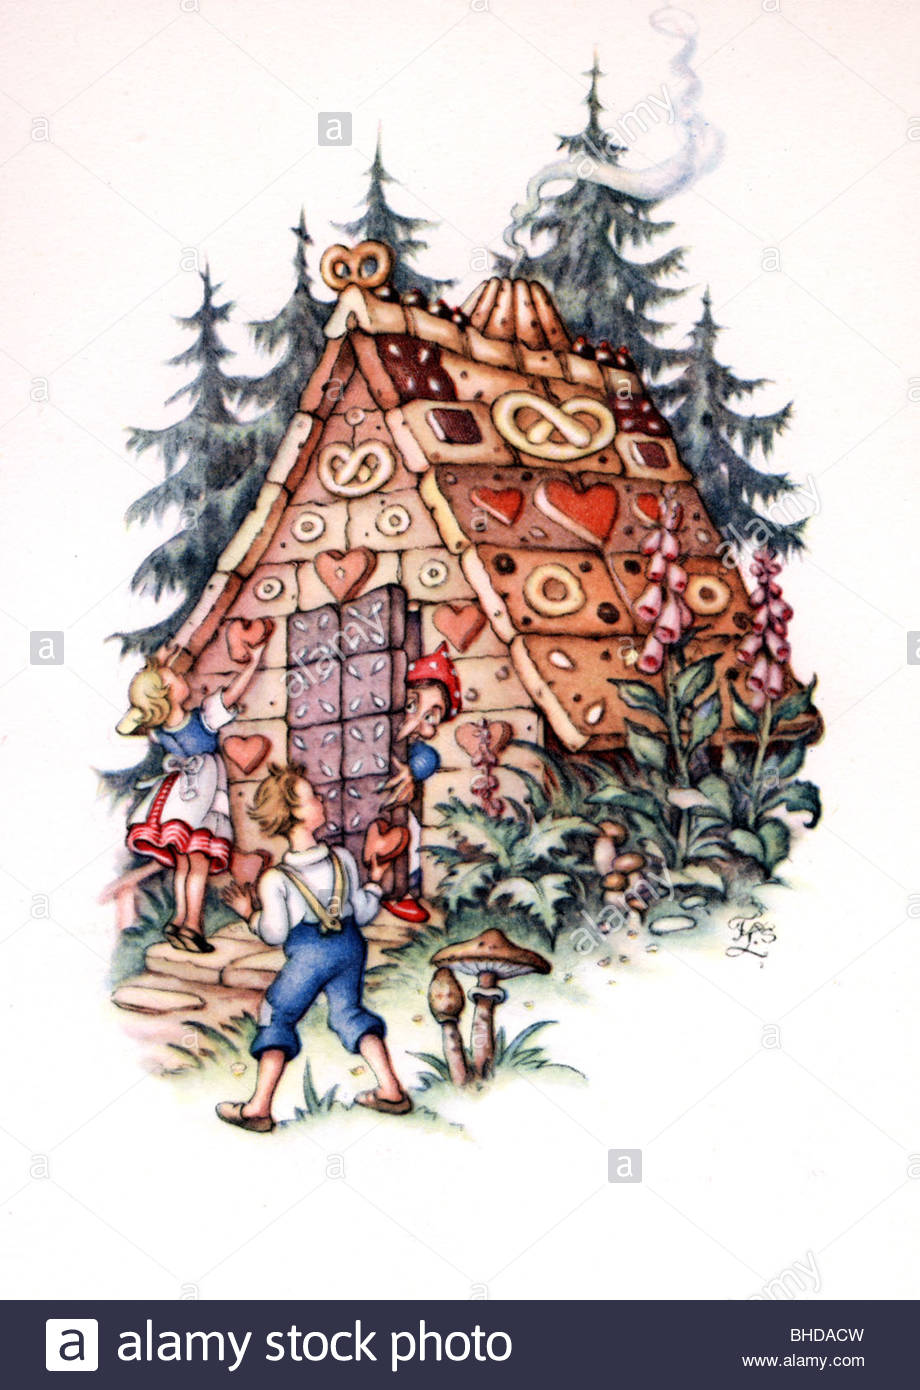 920x1390 Literature, Fairy Tales, Hansel And Gretel, Brothers Grimm, Colour